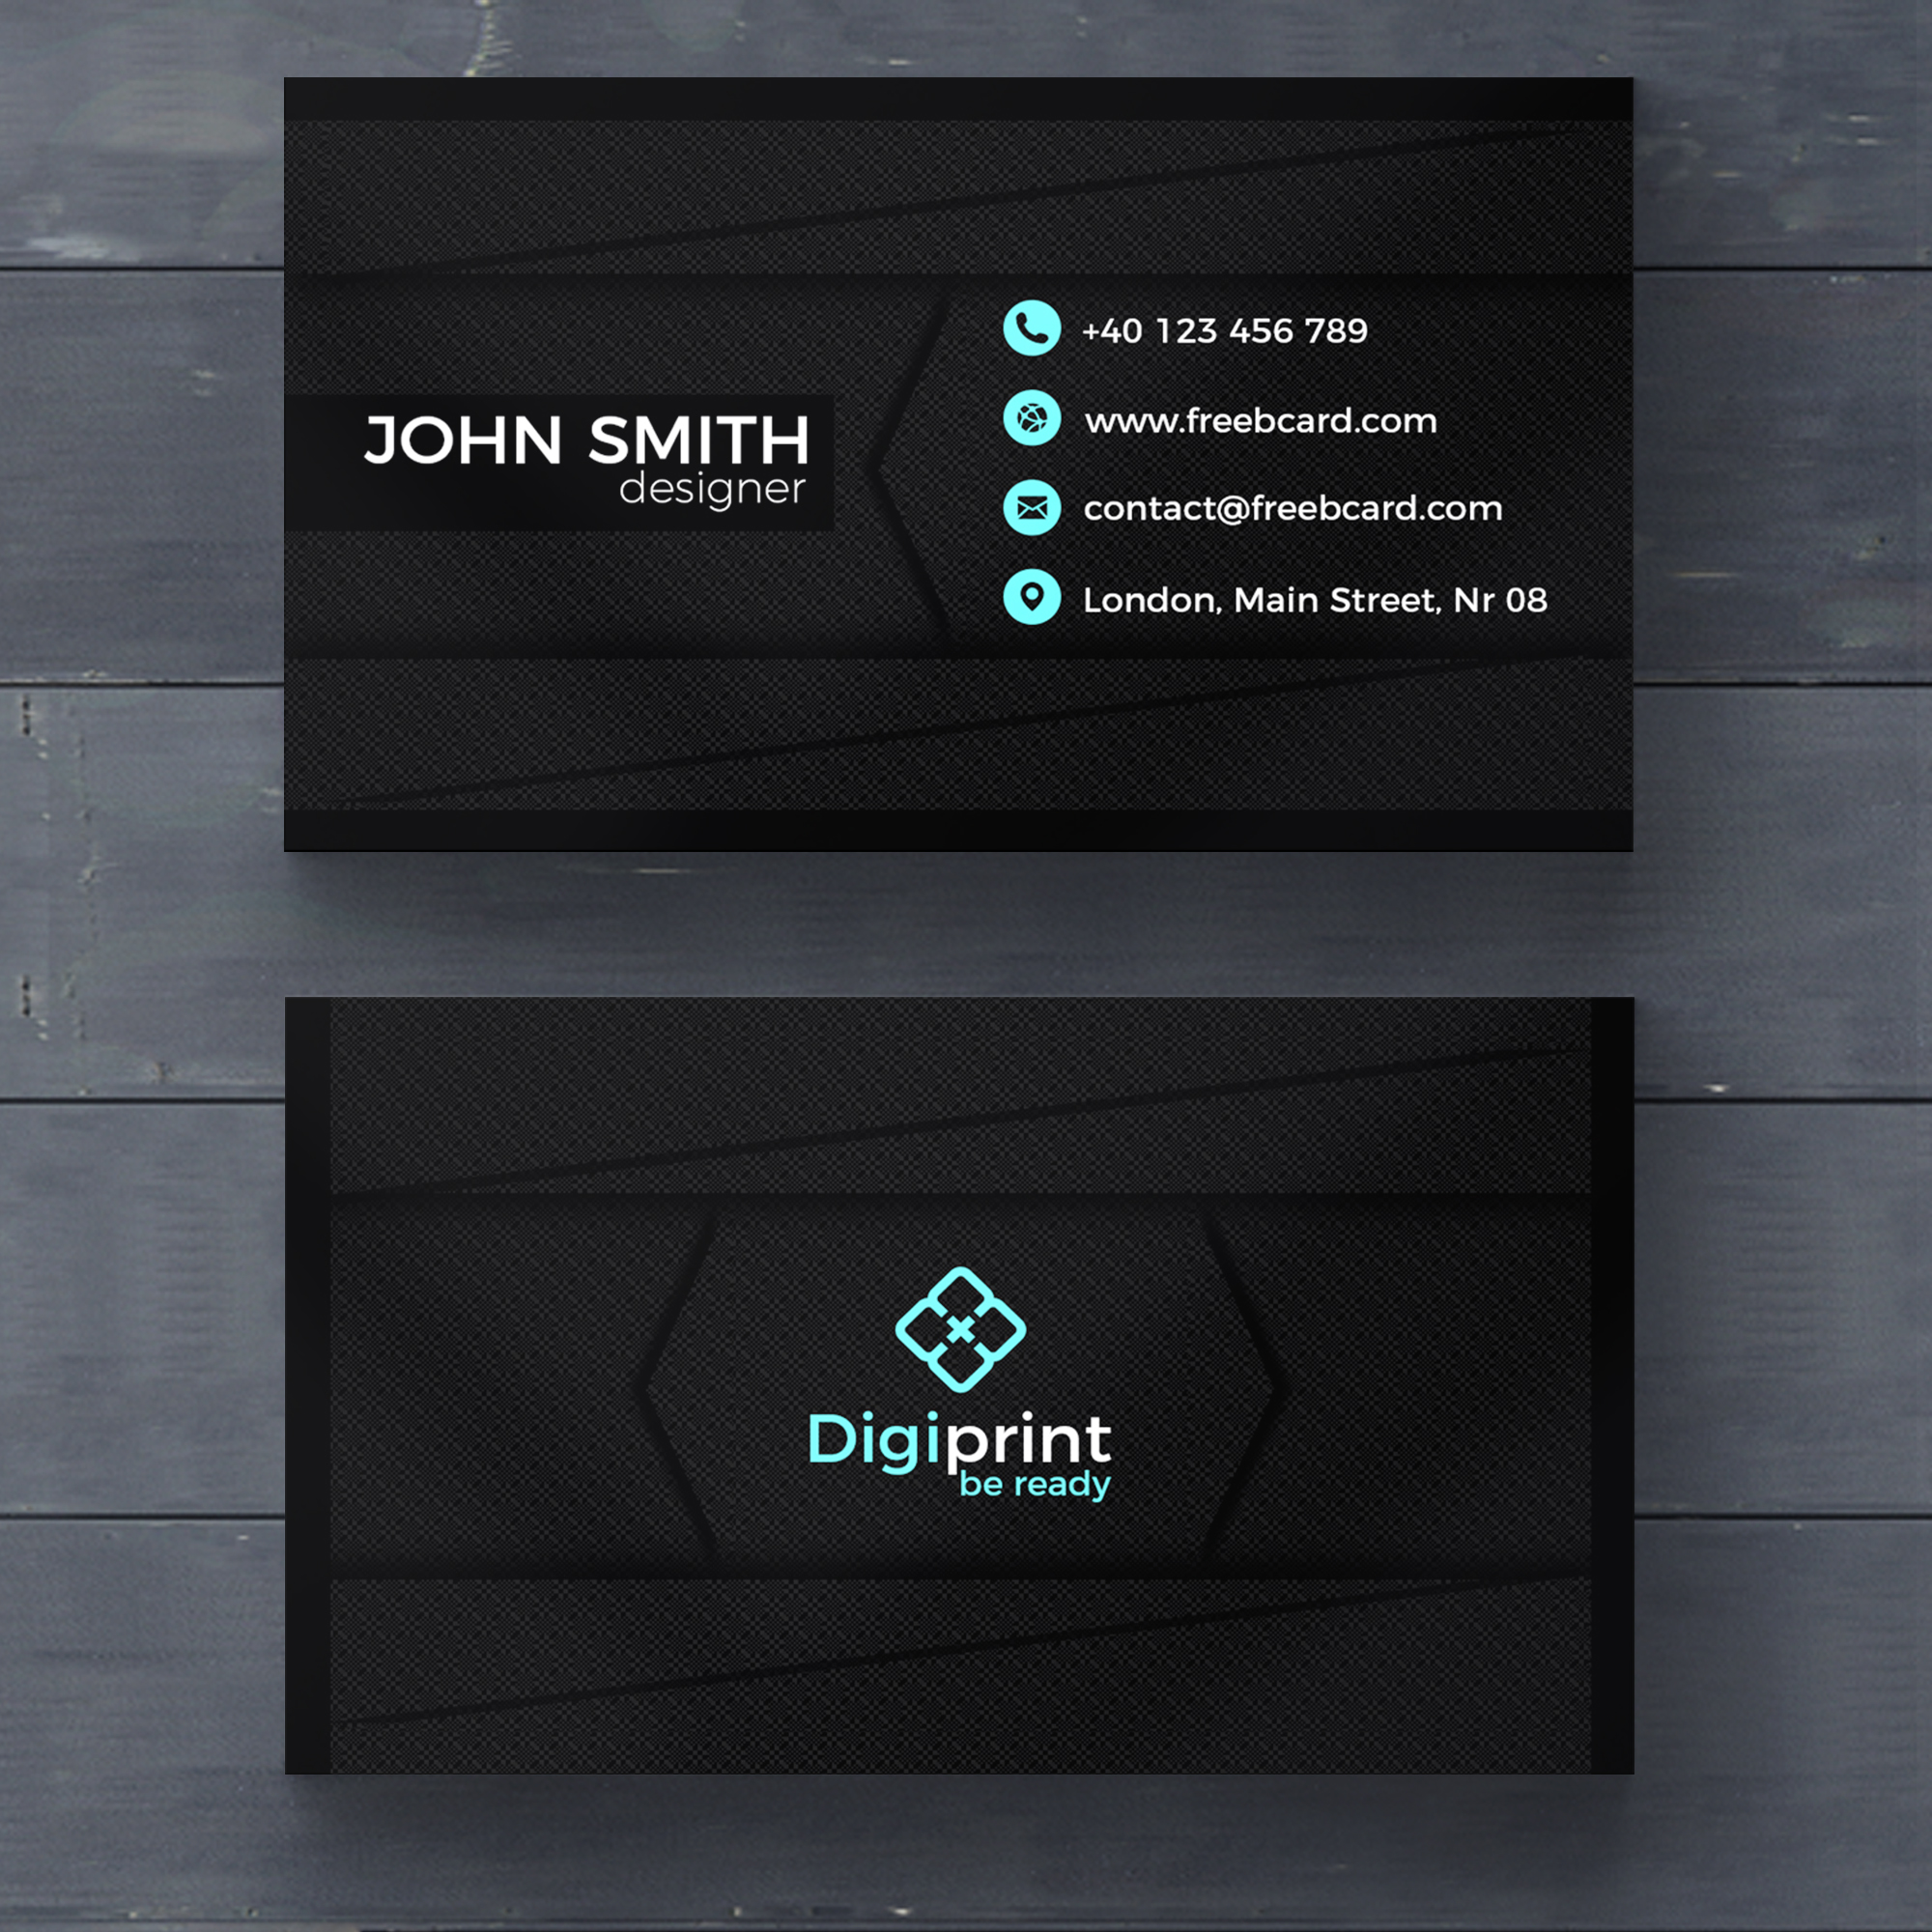 Cards PSD Free PSD Files - Business cards psd templates